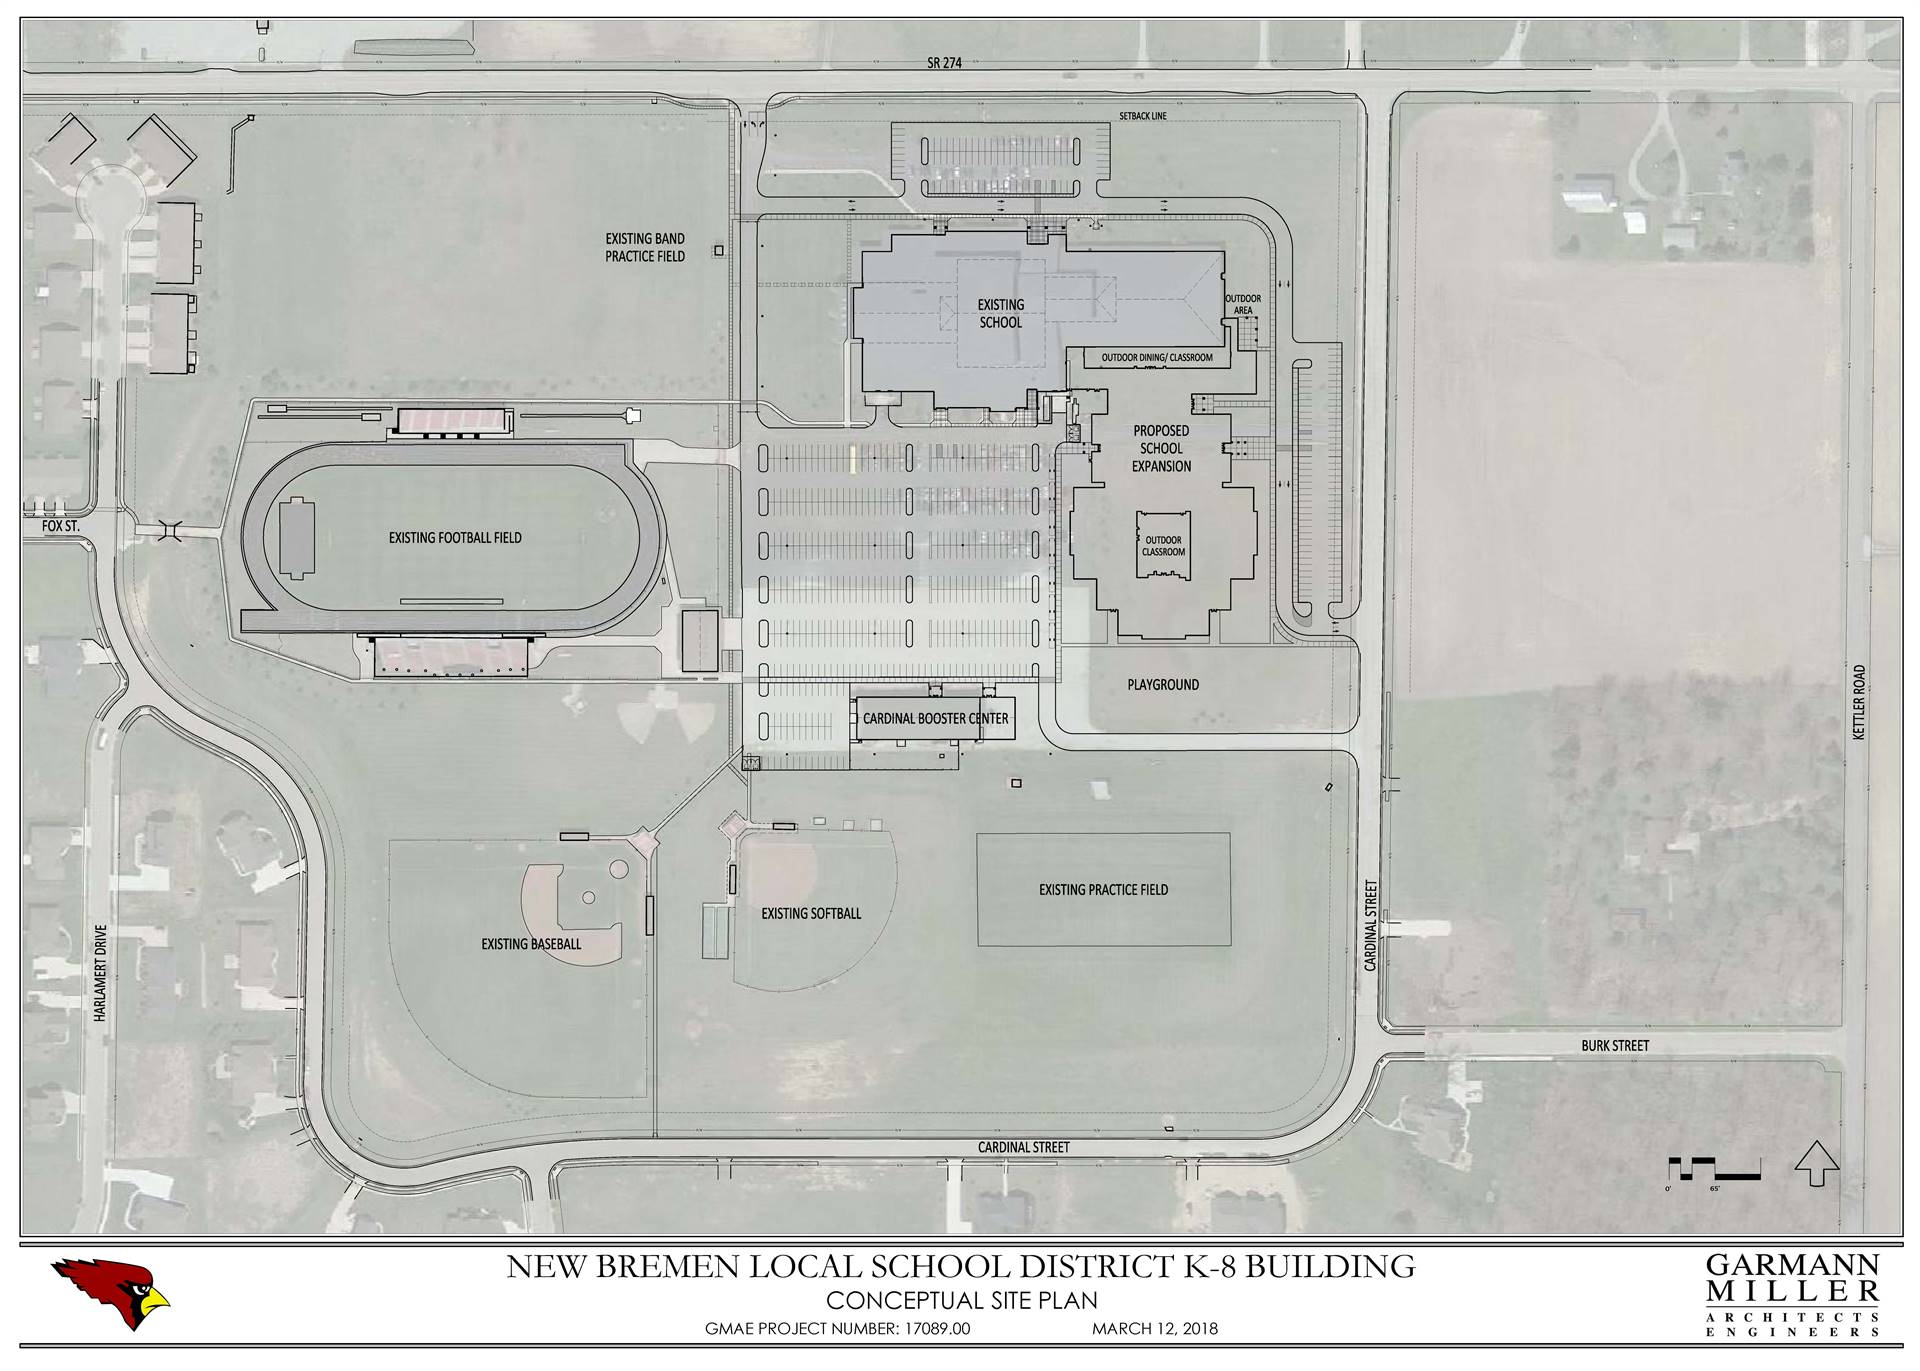 Site Layout Plan for new K-8 building